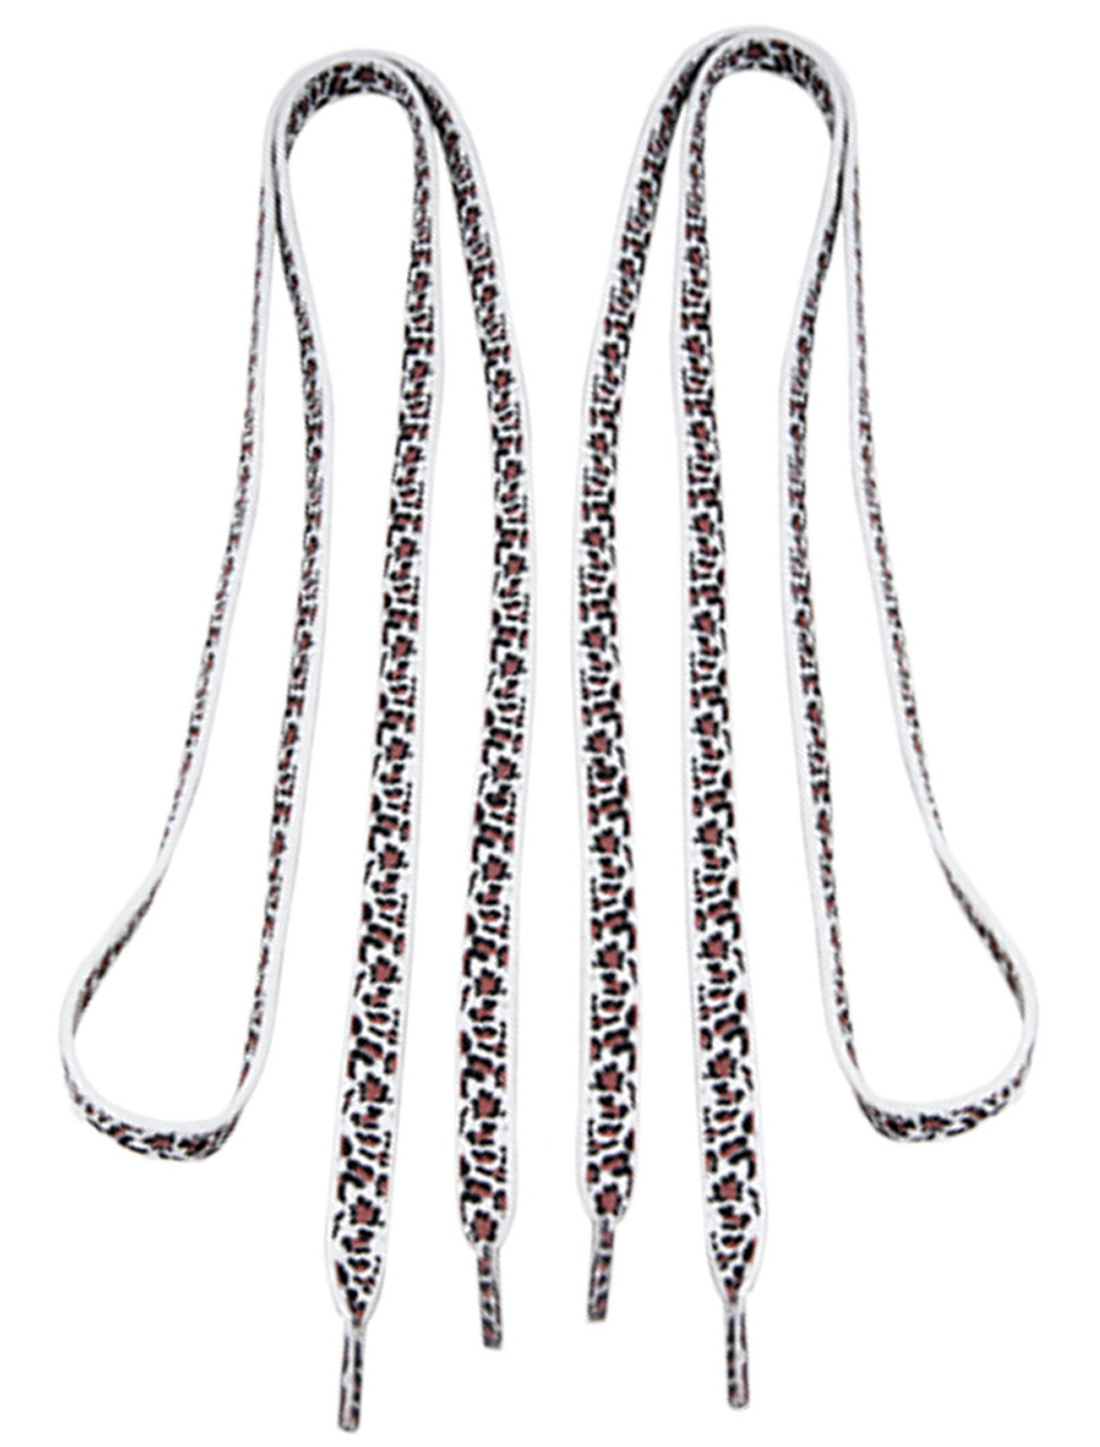 Replaceable Pair White Leopard Print Bootlace Shoelaces